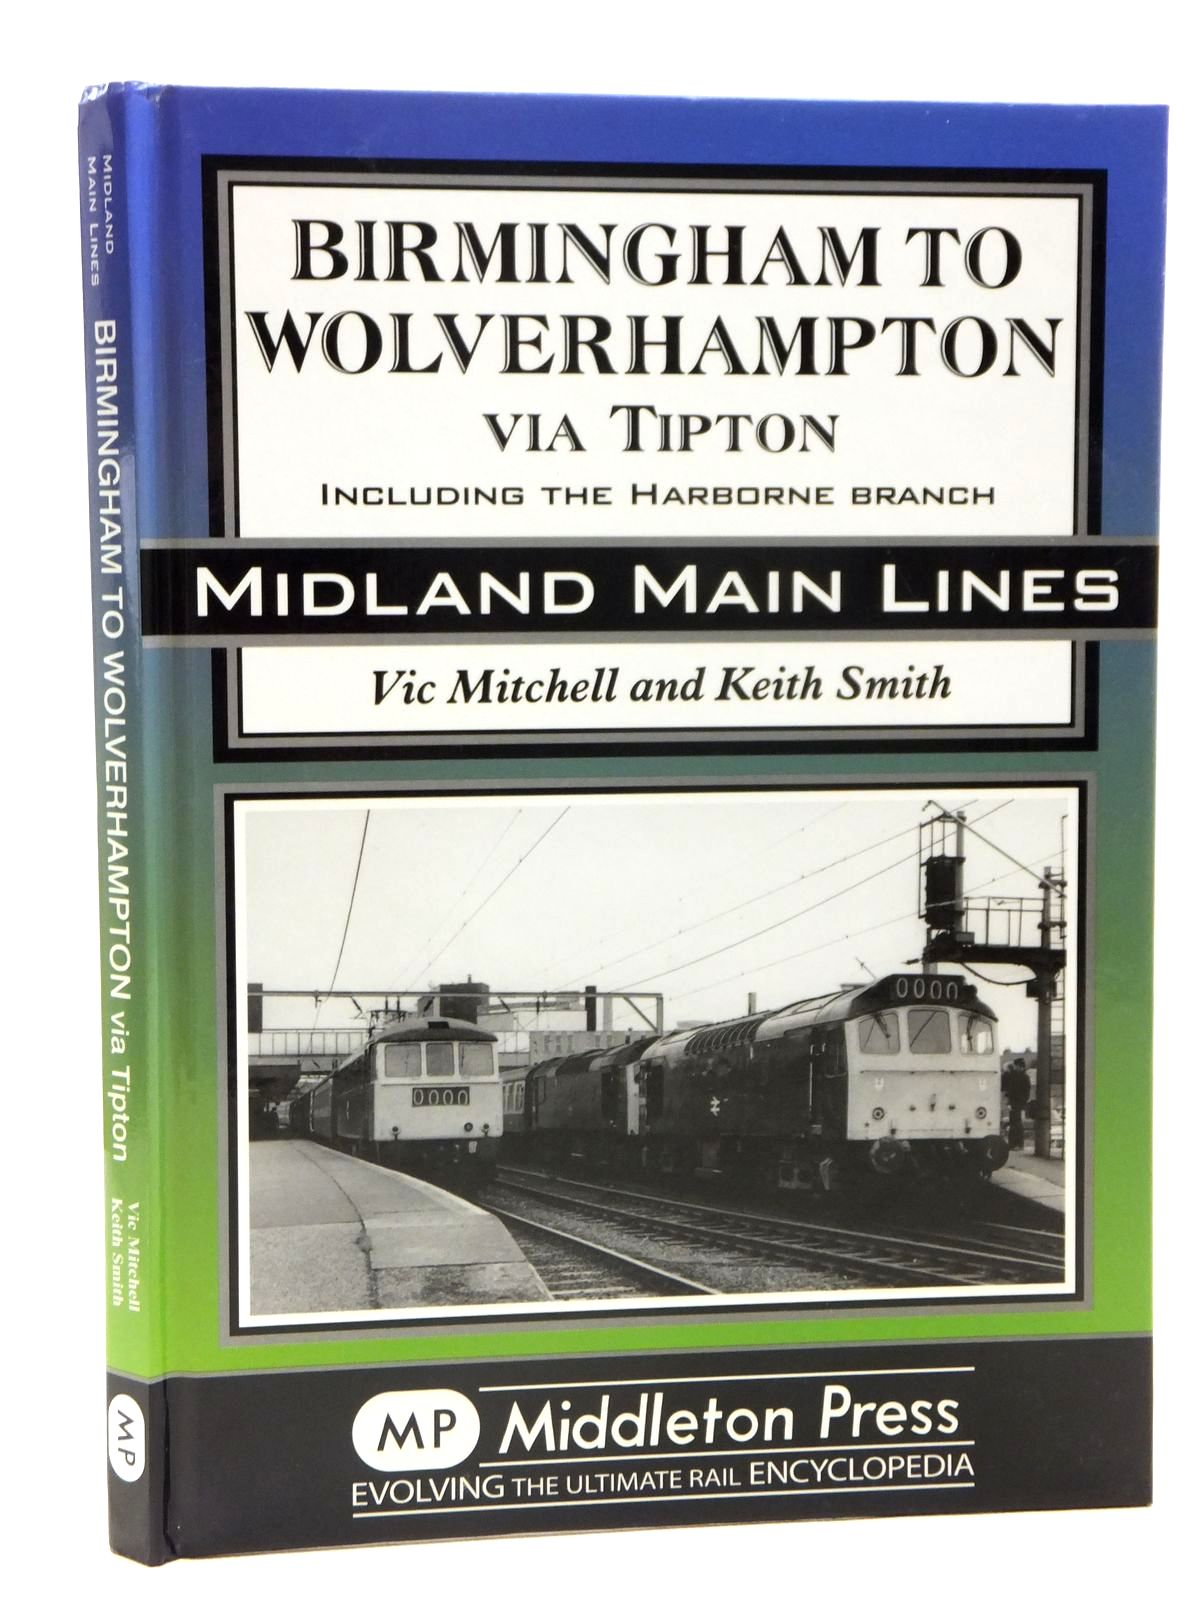 Photo of BIRMINGHAM TO WOLVERHAMPTON VIA TIPTON INCLUDING THE HARBORNE BRANCH (MIDLAND MAIN LINES) written by Mitchell, Vic Smith, Keith published by Middleton Press (STOCK CODE: 2121311)  for sale by Stella & Rose's Books